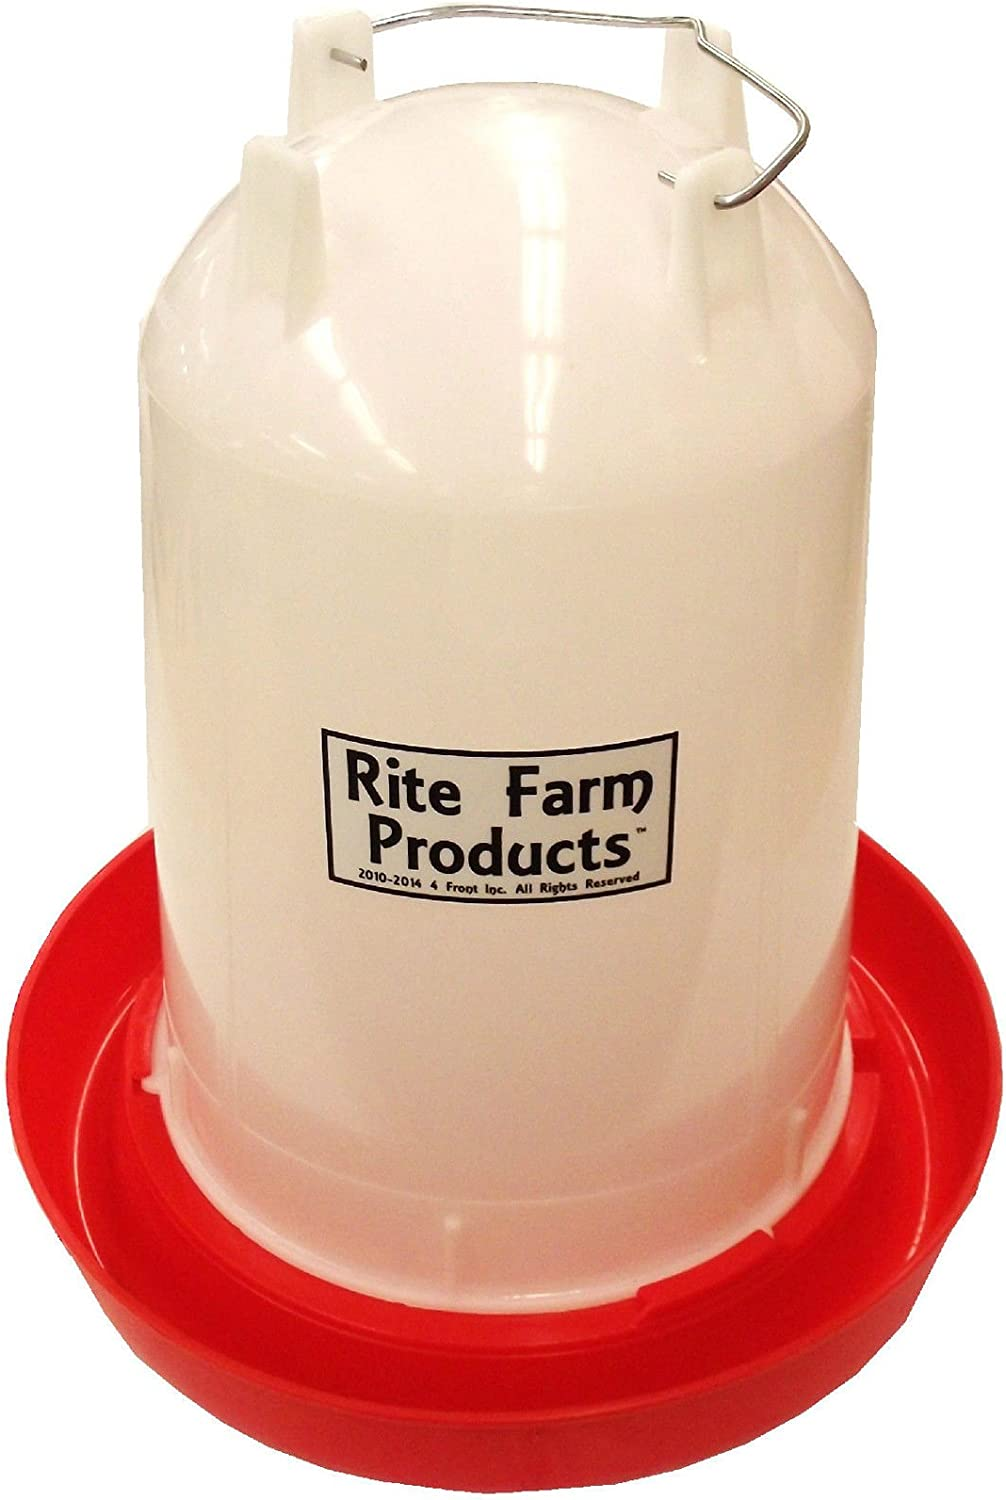 COMBO*X-LARGE RITE FARM PRODUCTS 3.7 GAL /& 20 LB WATERER /&FEEDER CHICKEN POULTRY